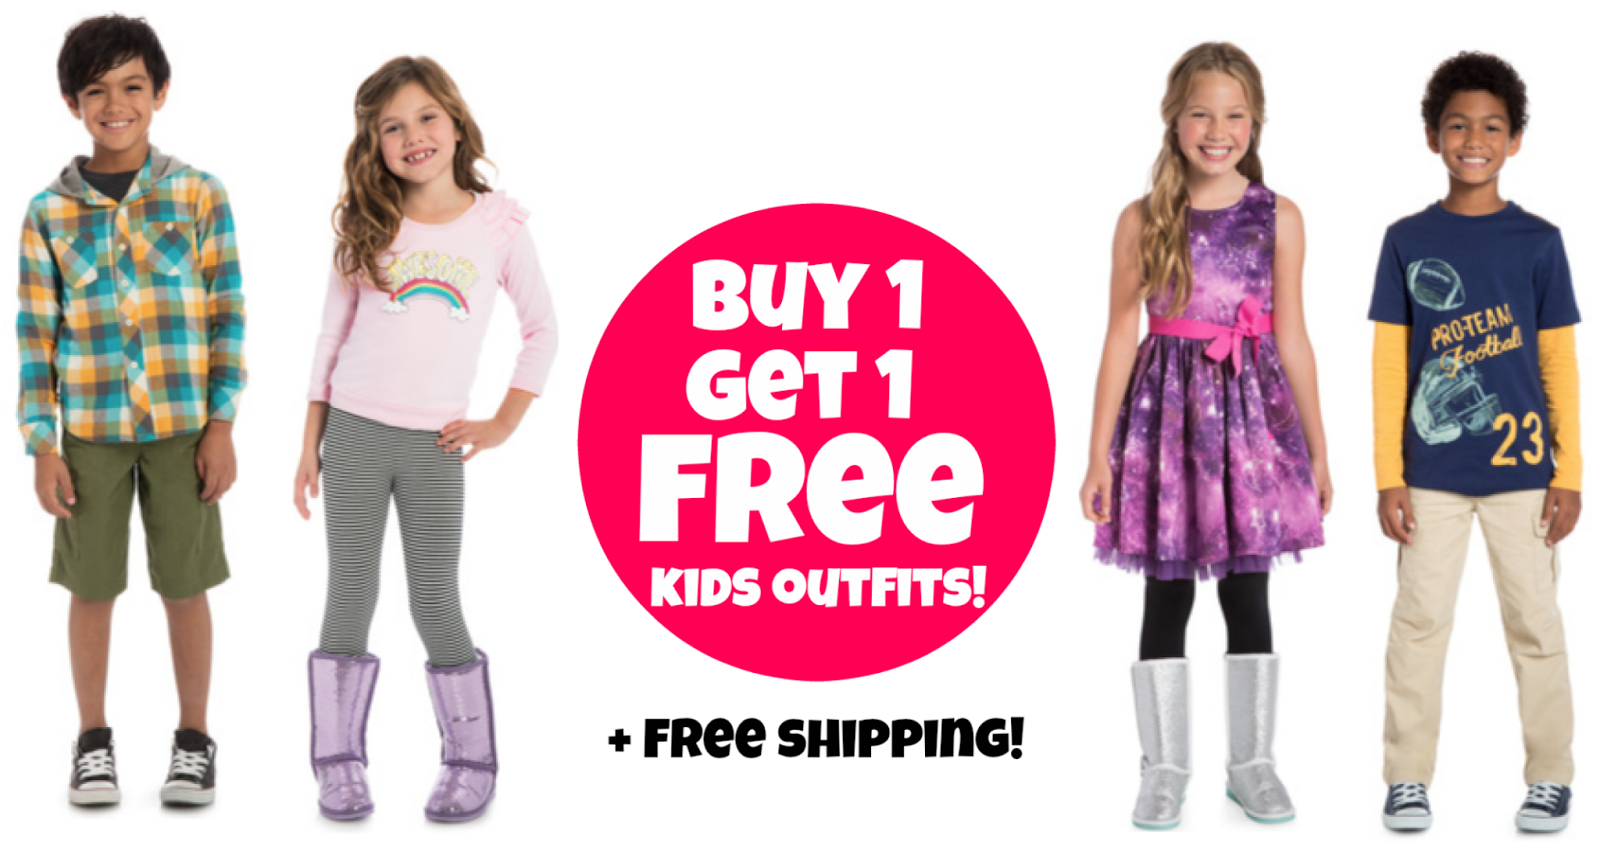 http://www.thebinderladies.com/2015/02/fabkids-buy-1-get-1-free-kids-outfits.html